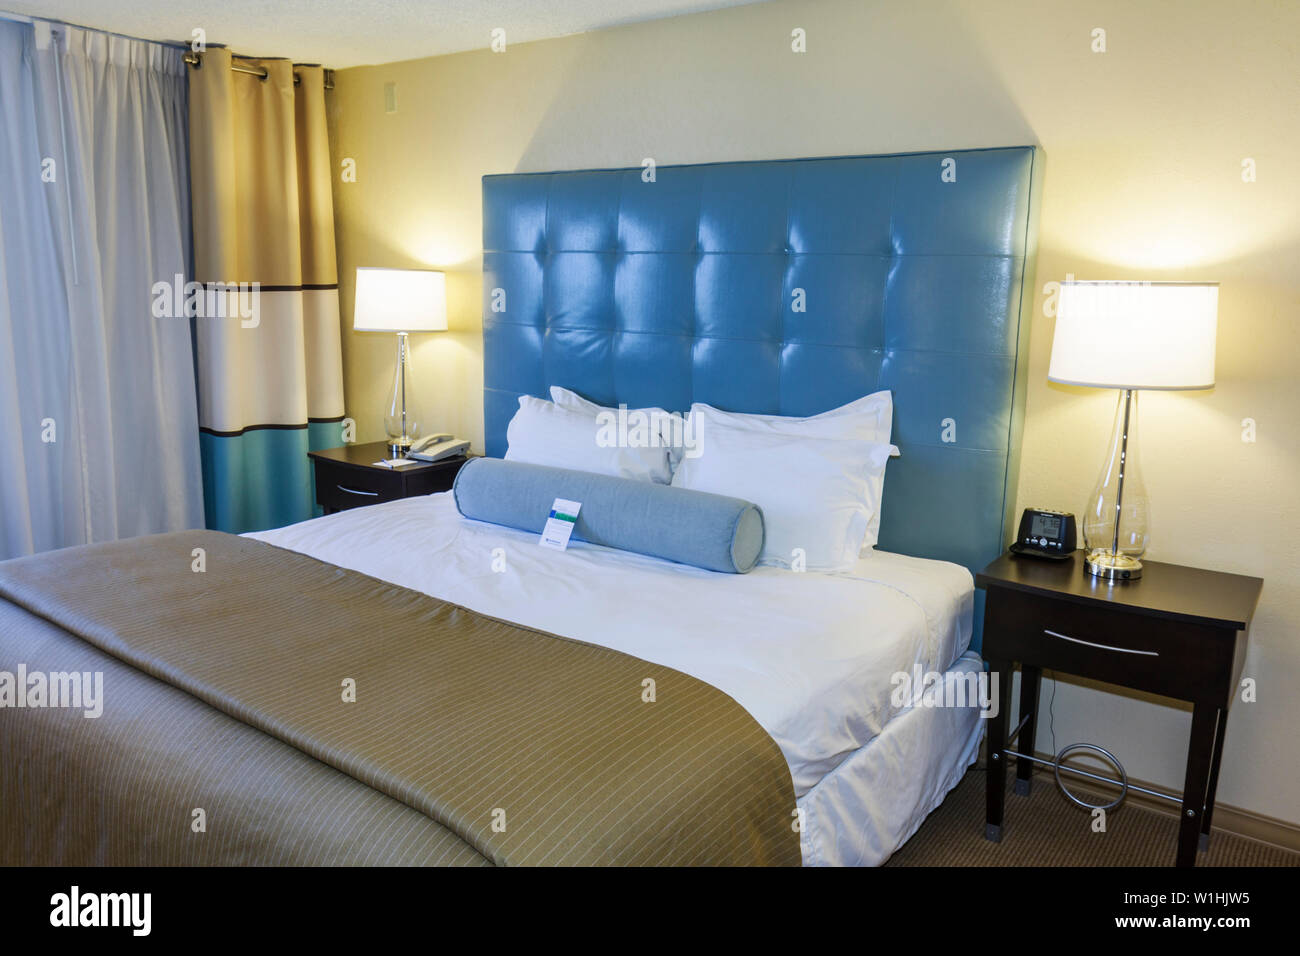 Queen Size Stock Photos U0026 Queen Size Stock Images   Alamy